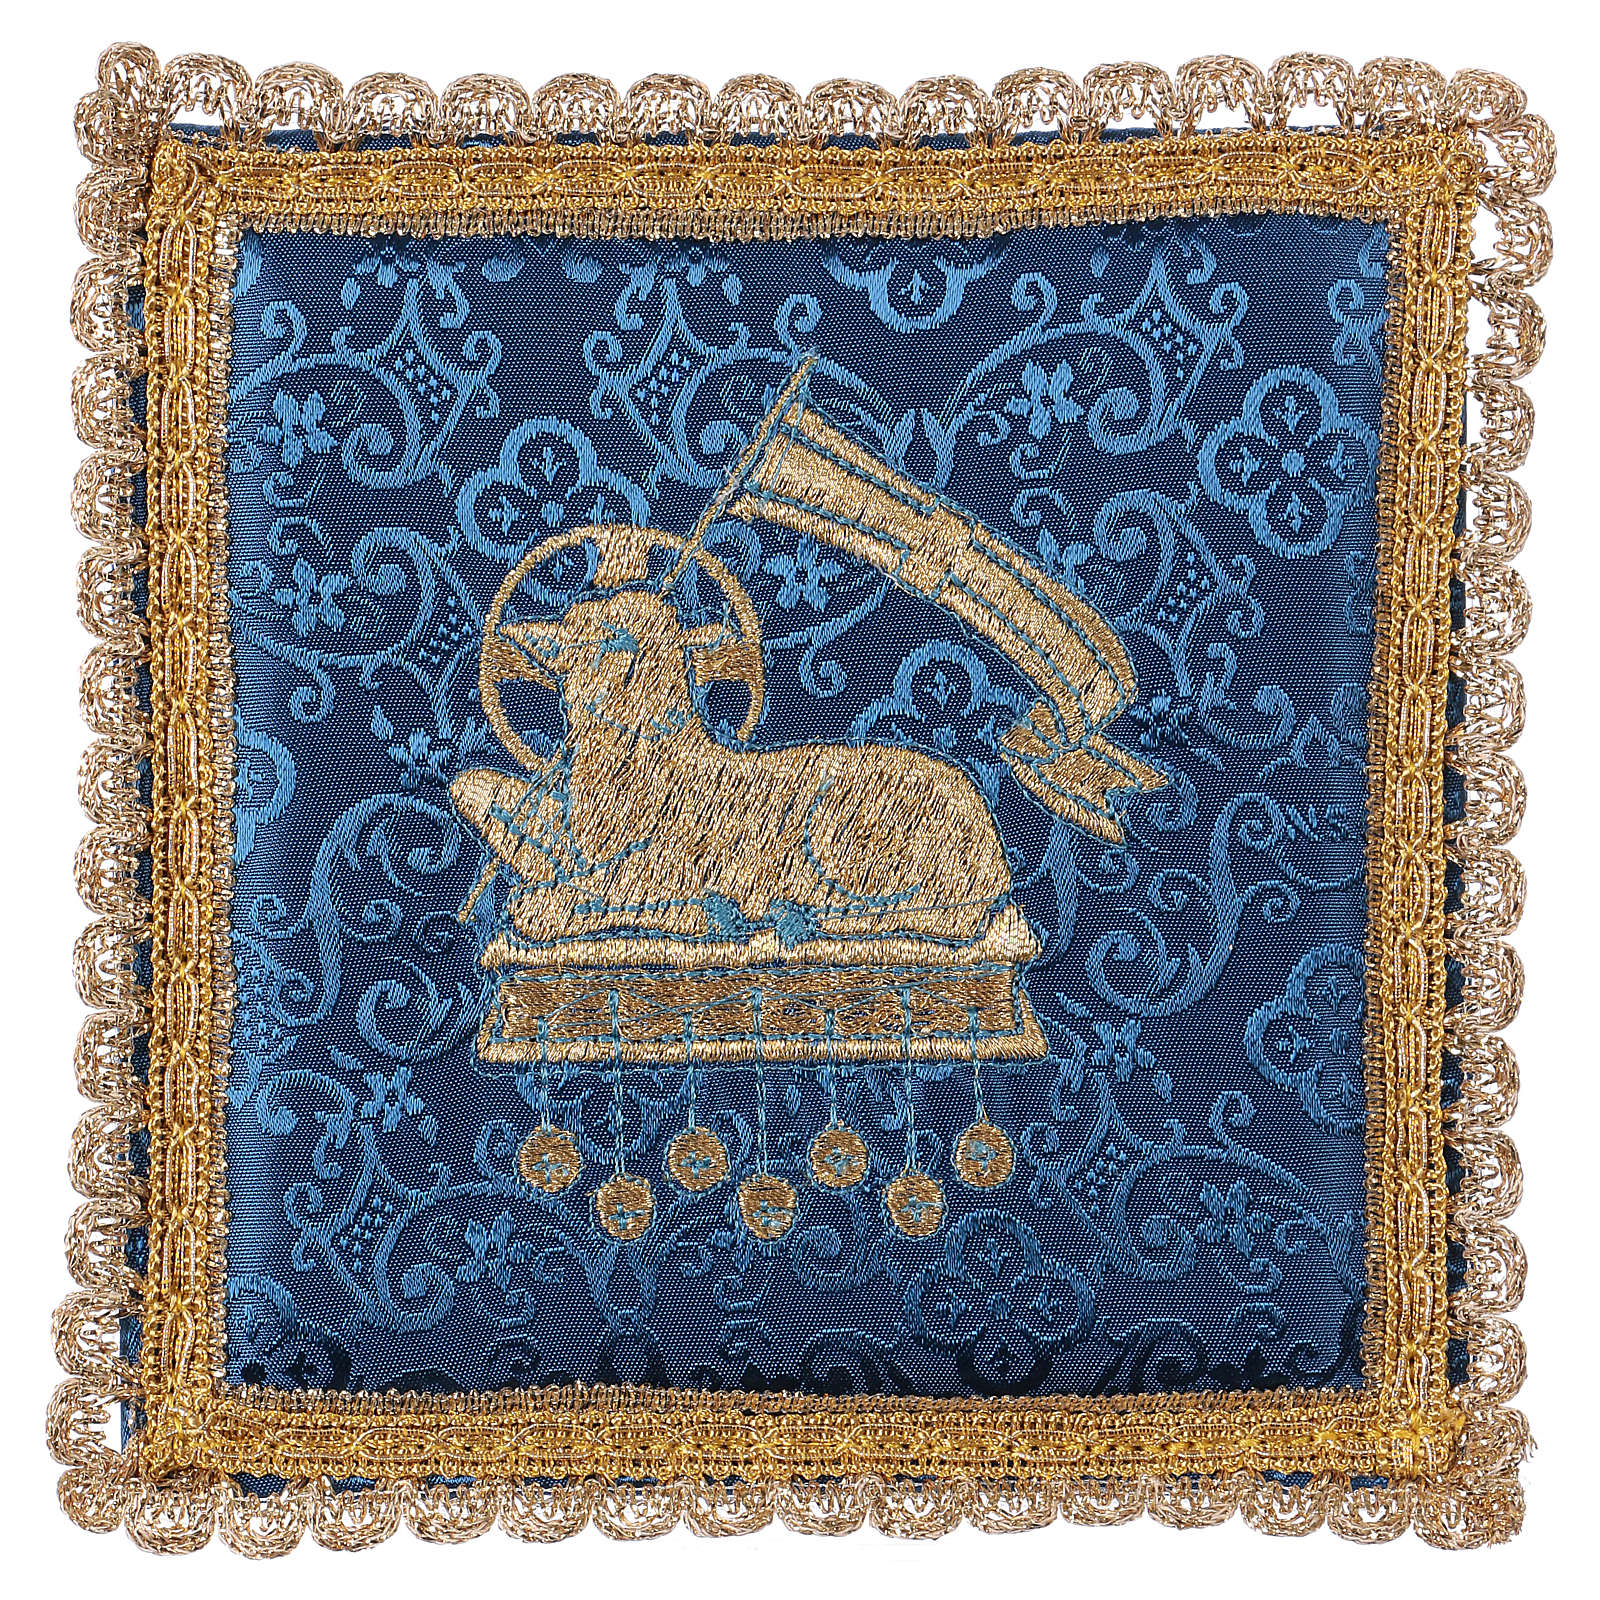 Chalice veil (pall) with lamb embroidery on blue damask fabric 4